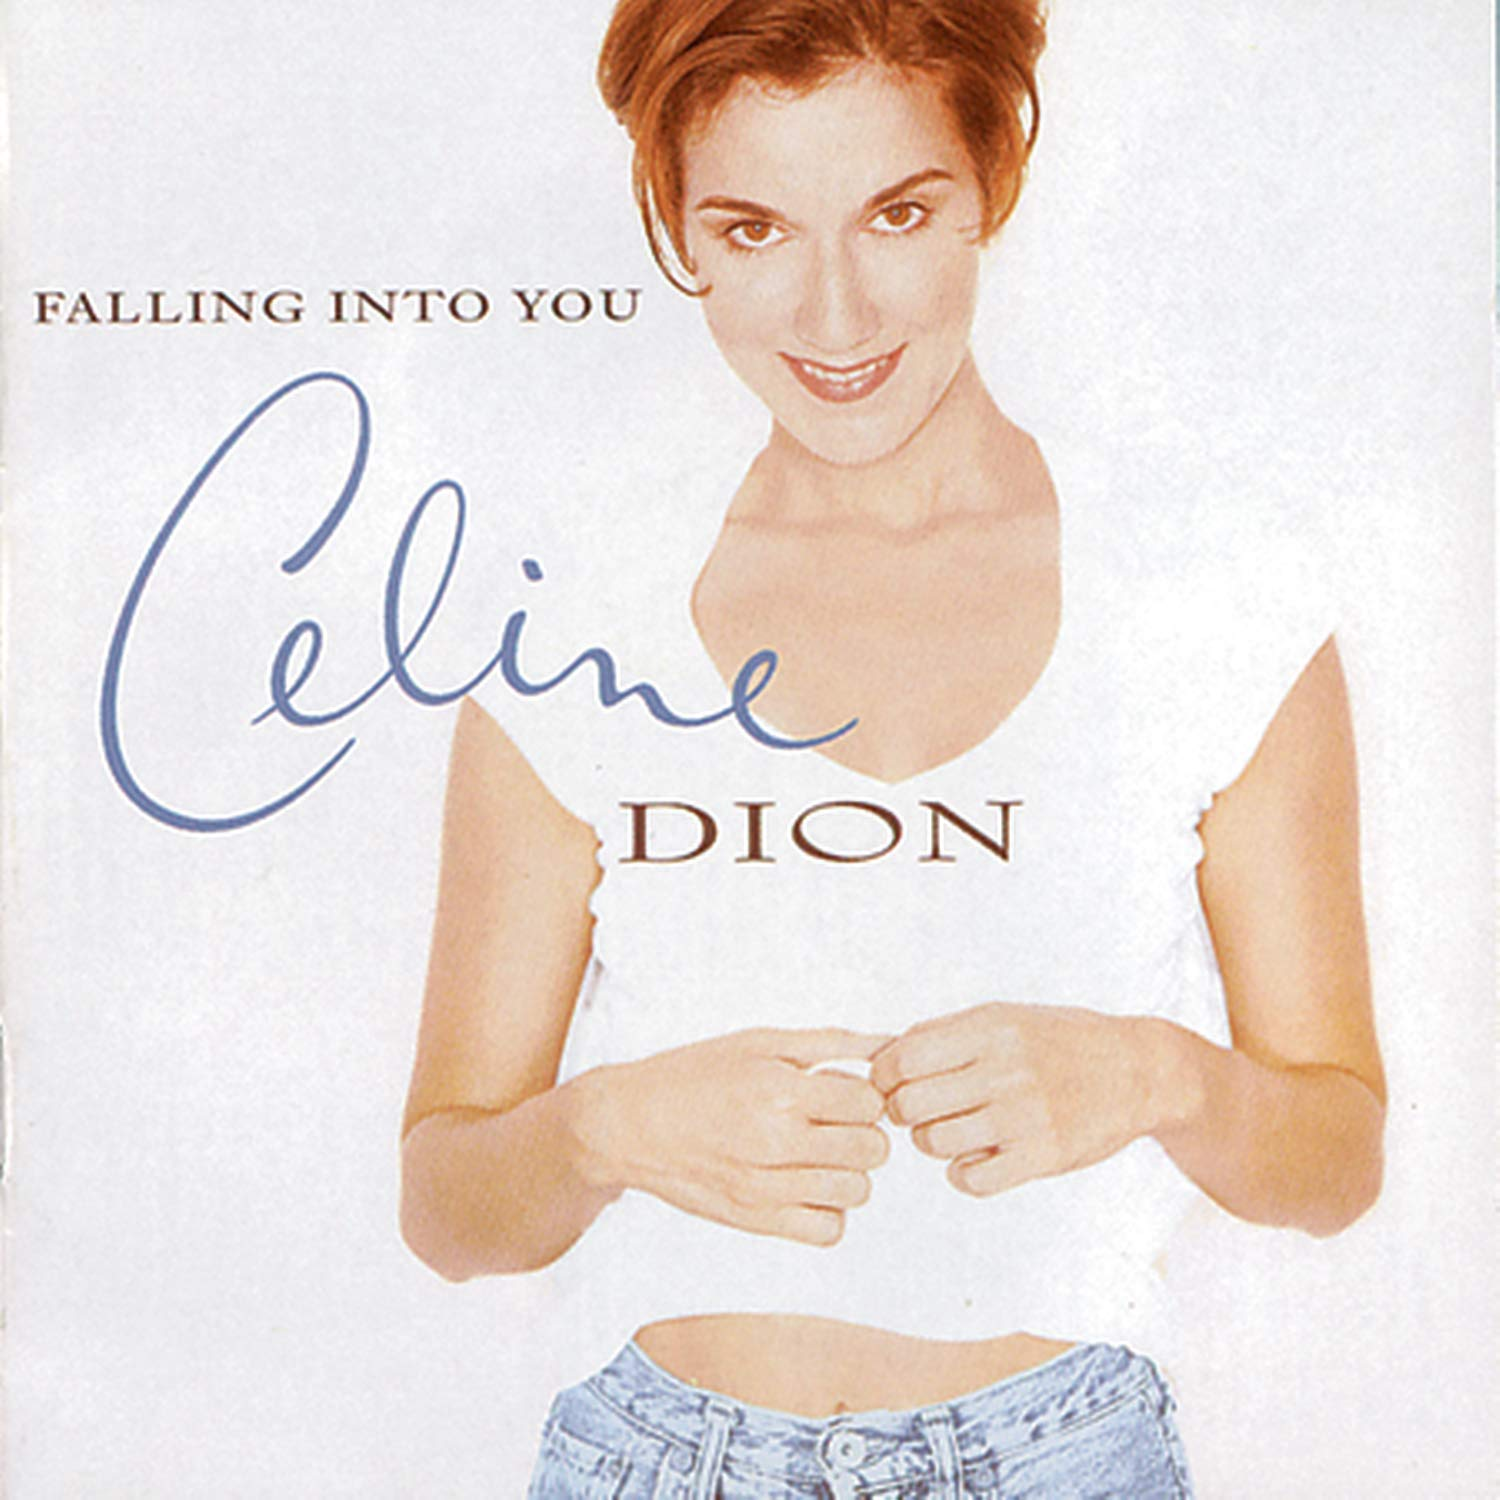 Falling into you The story of C/éline Dion